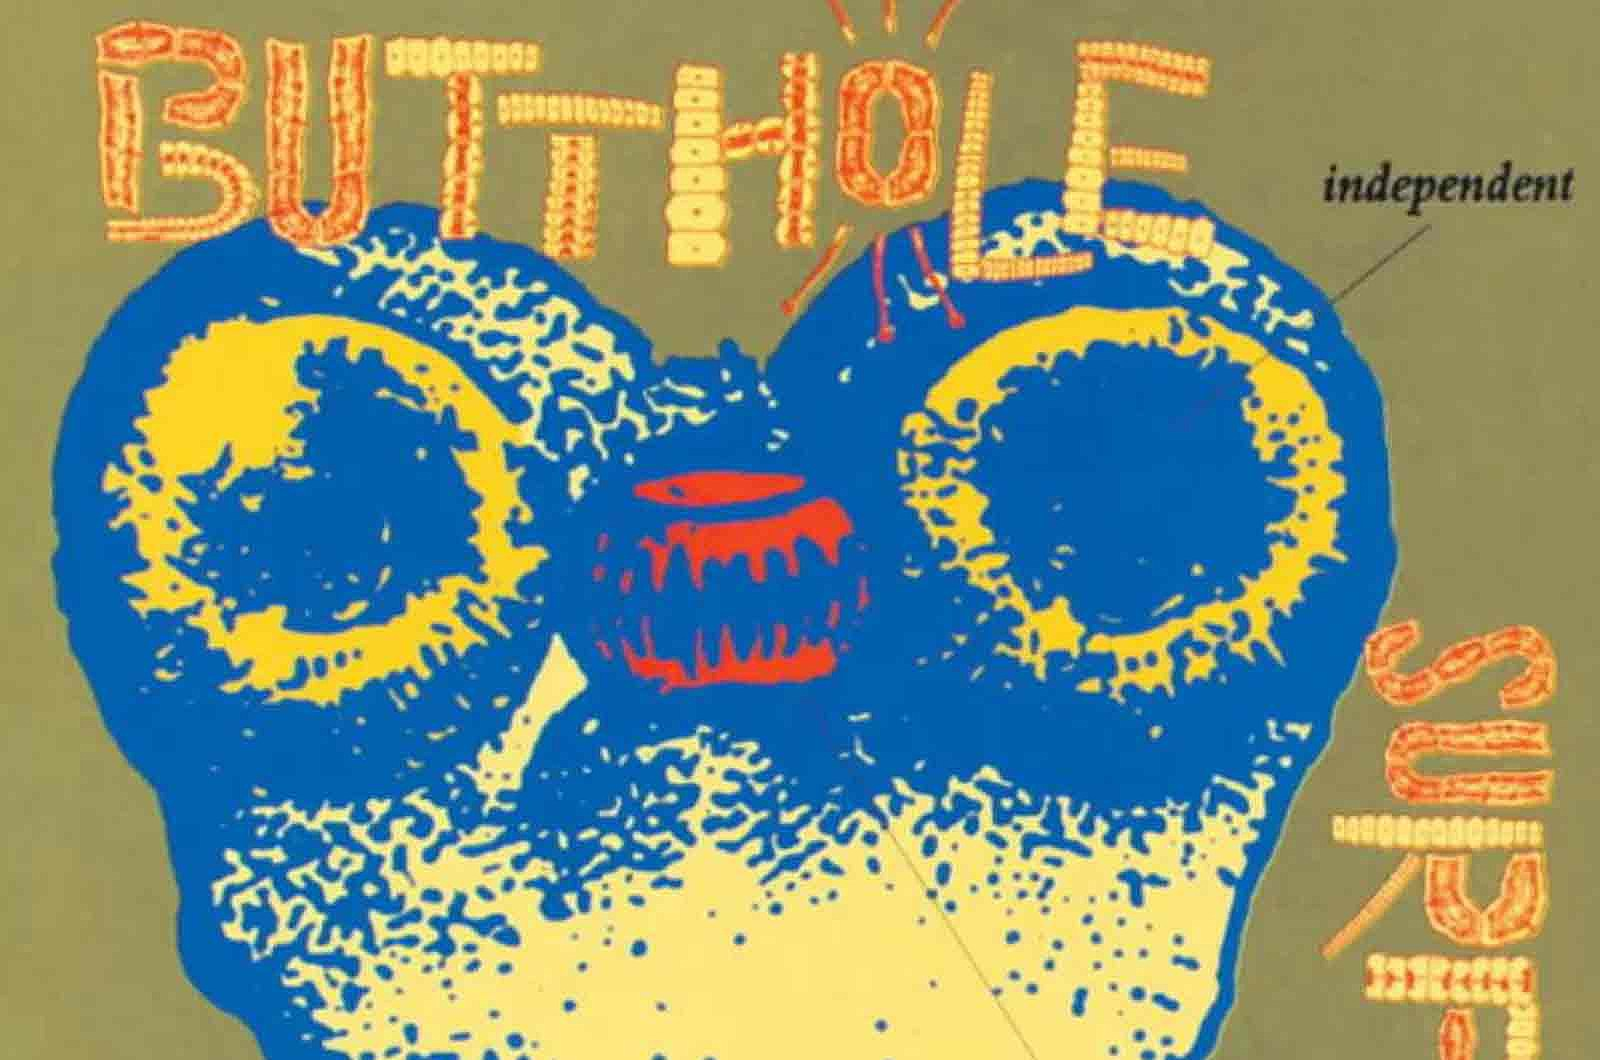 25 Years Ago: The Butthole Surfers Team Up With John Paul Jones for 'Independent Worm Saloon'